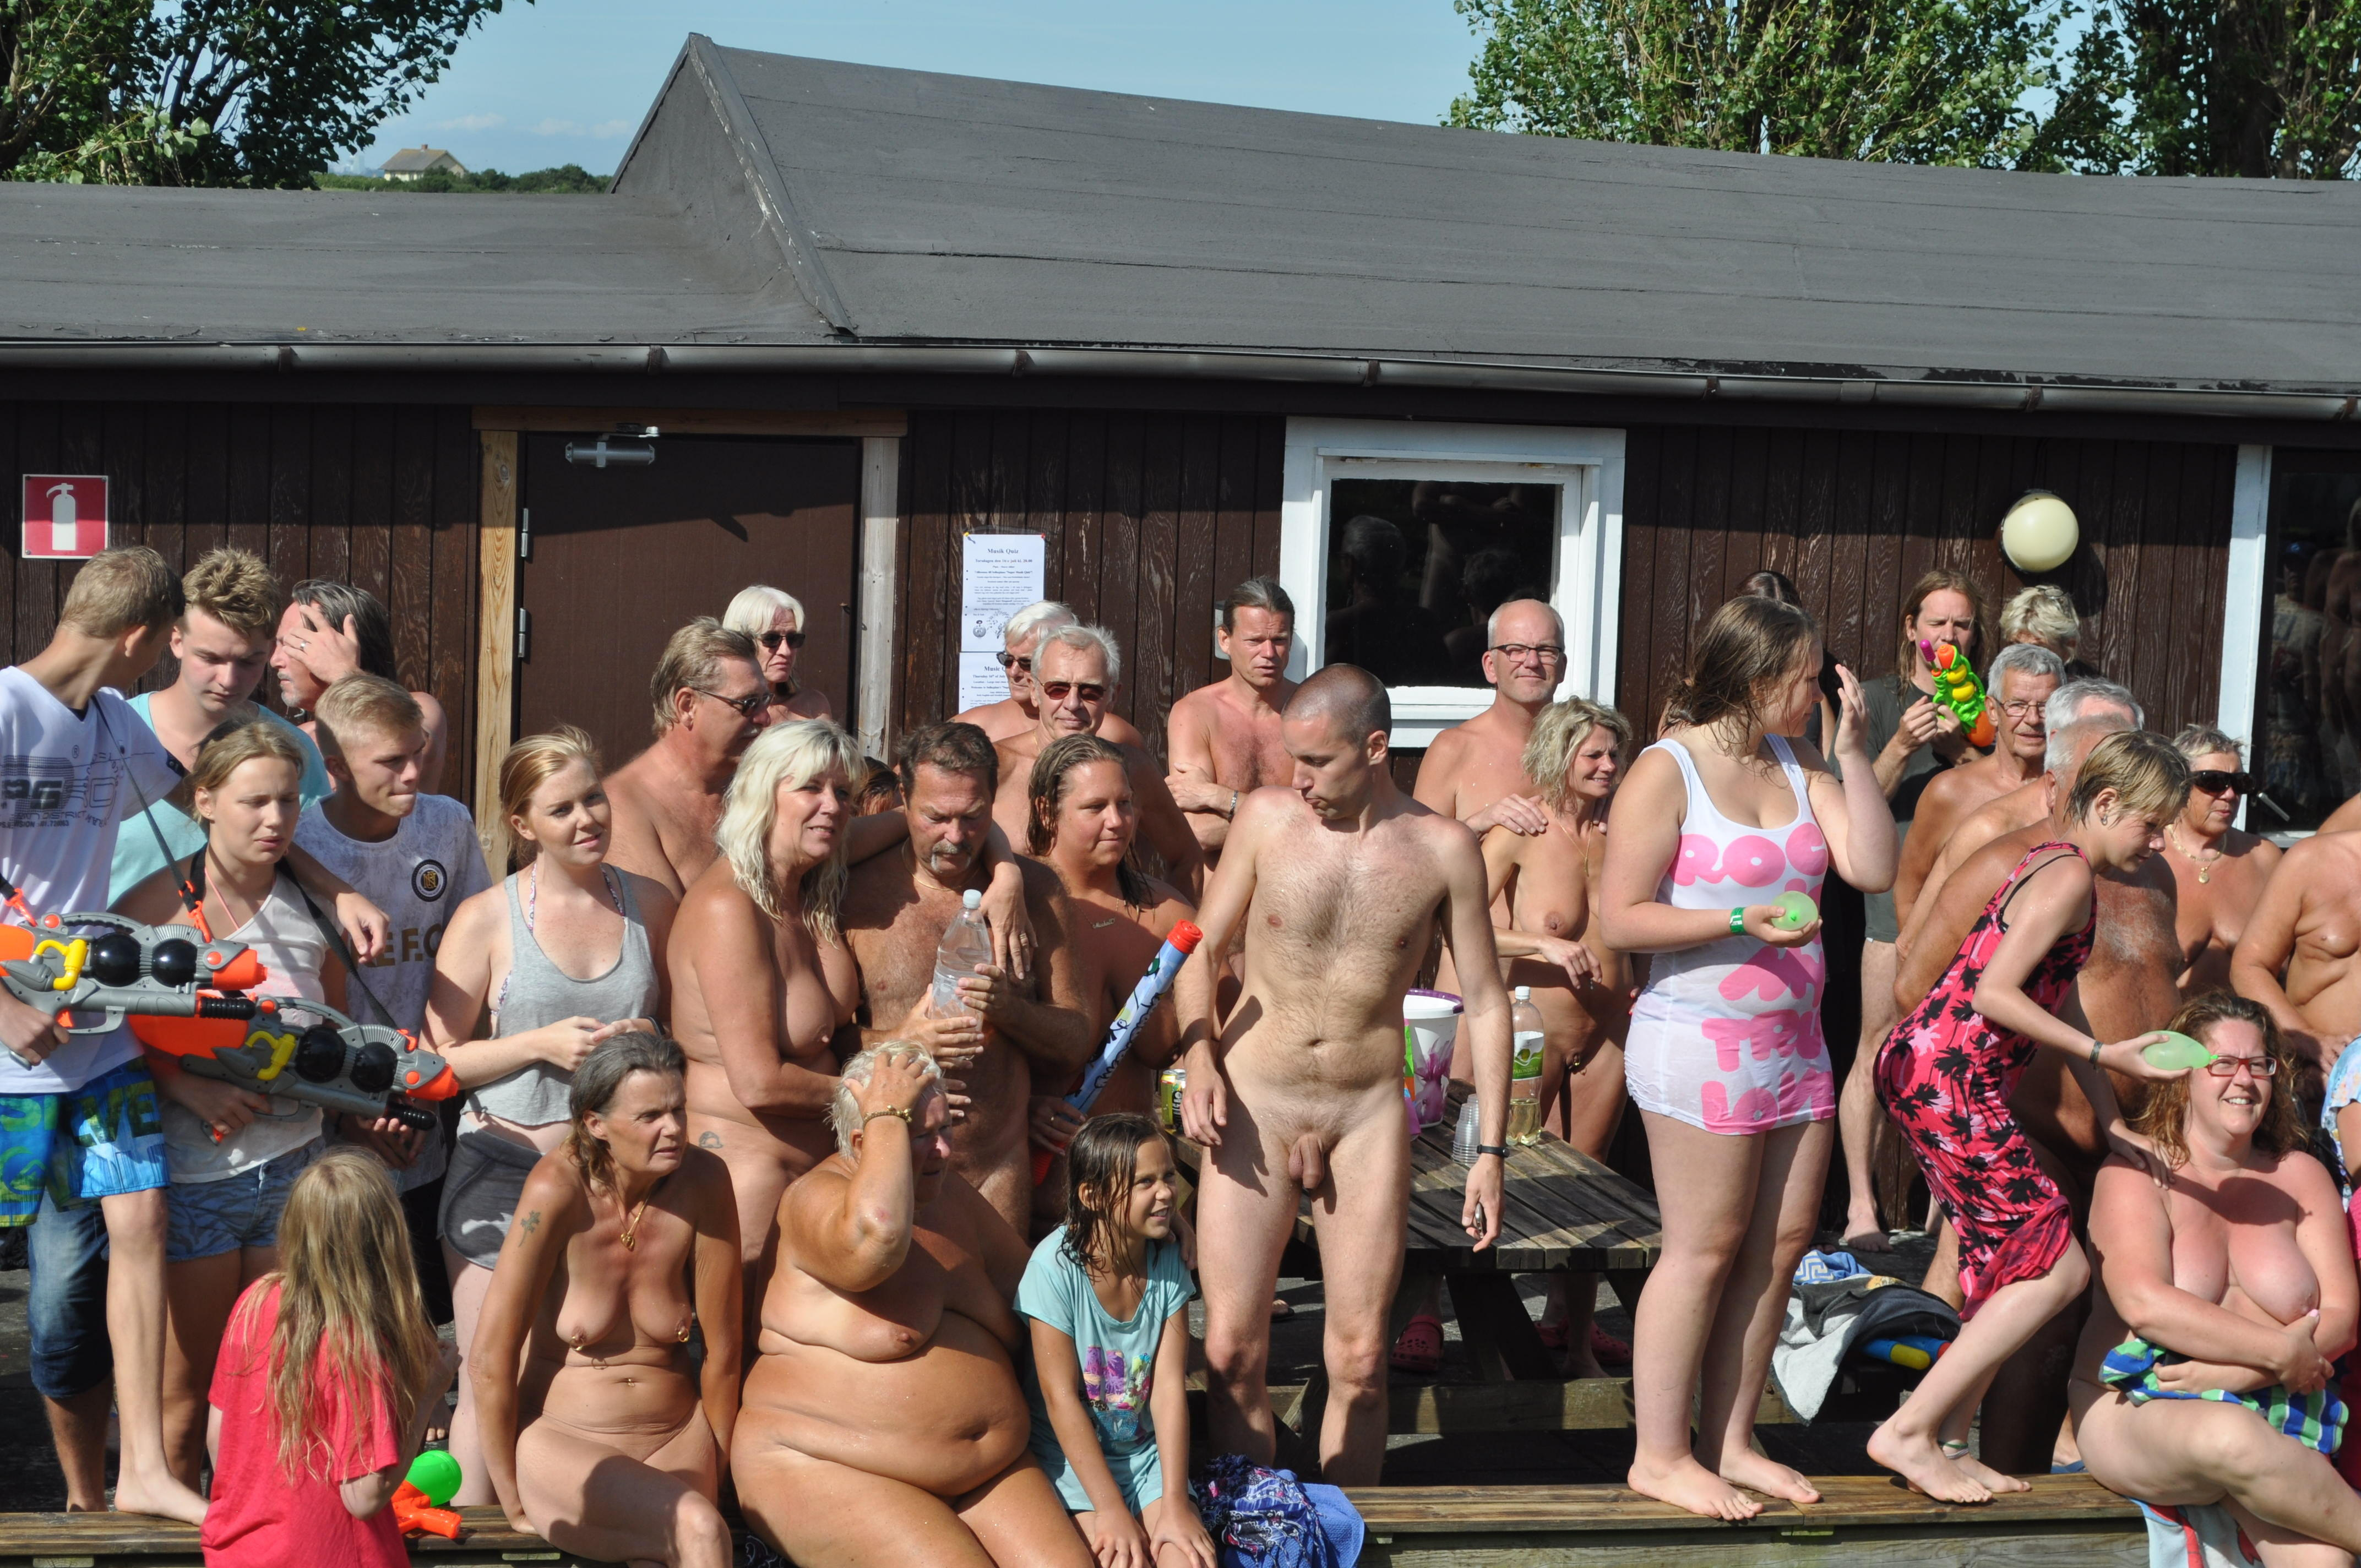 Family nudist camps in kansas — 15